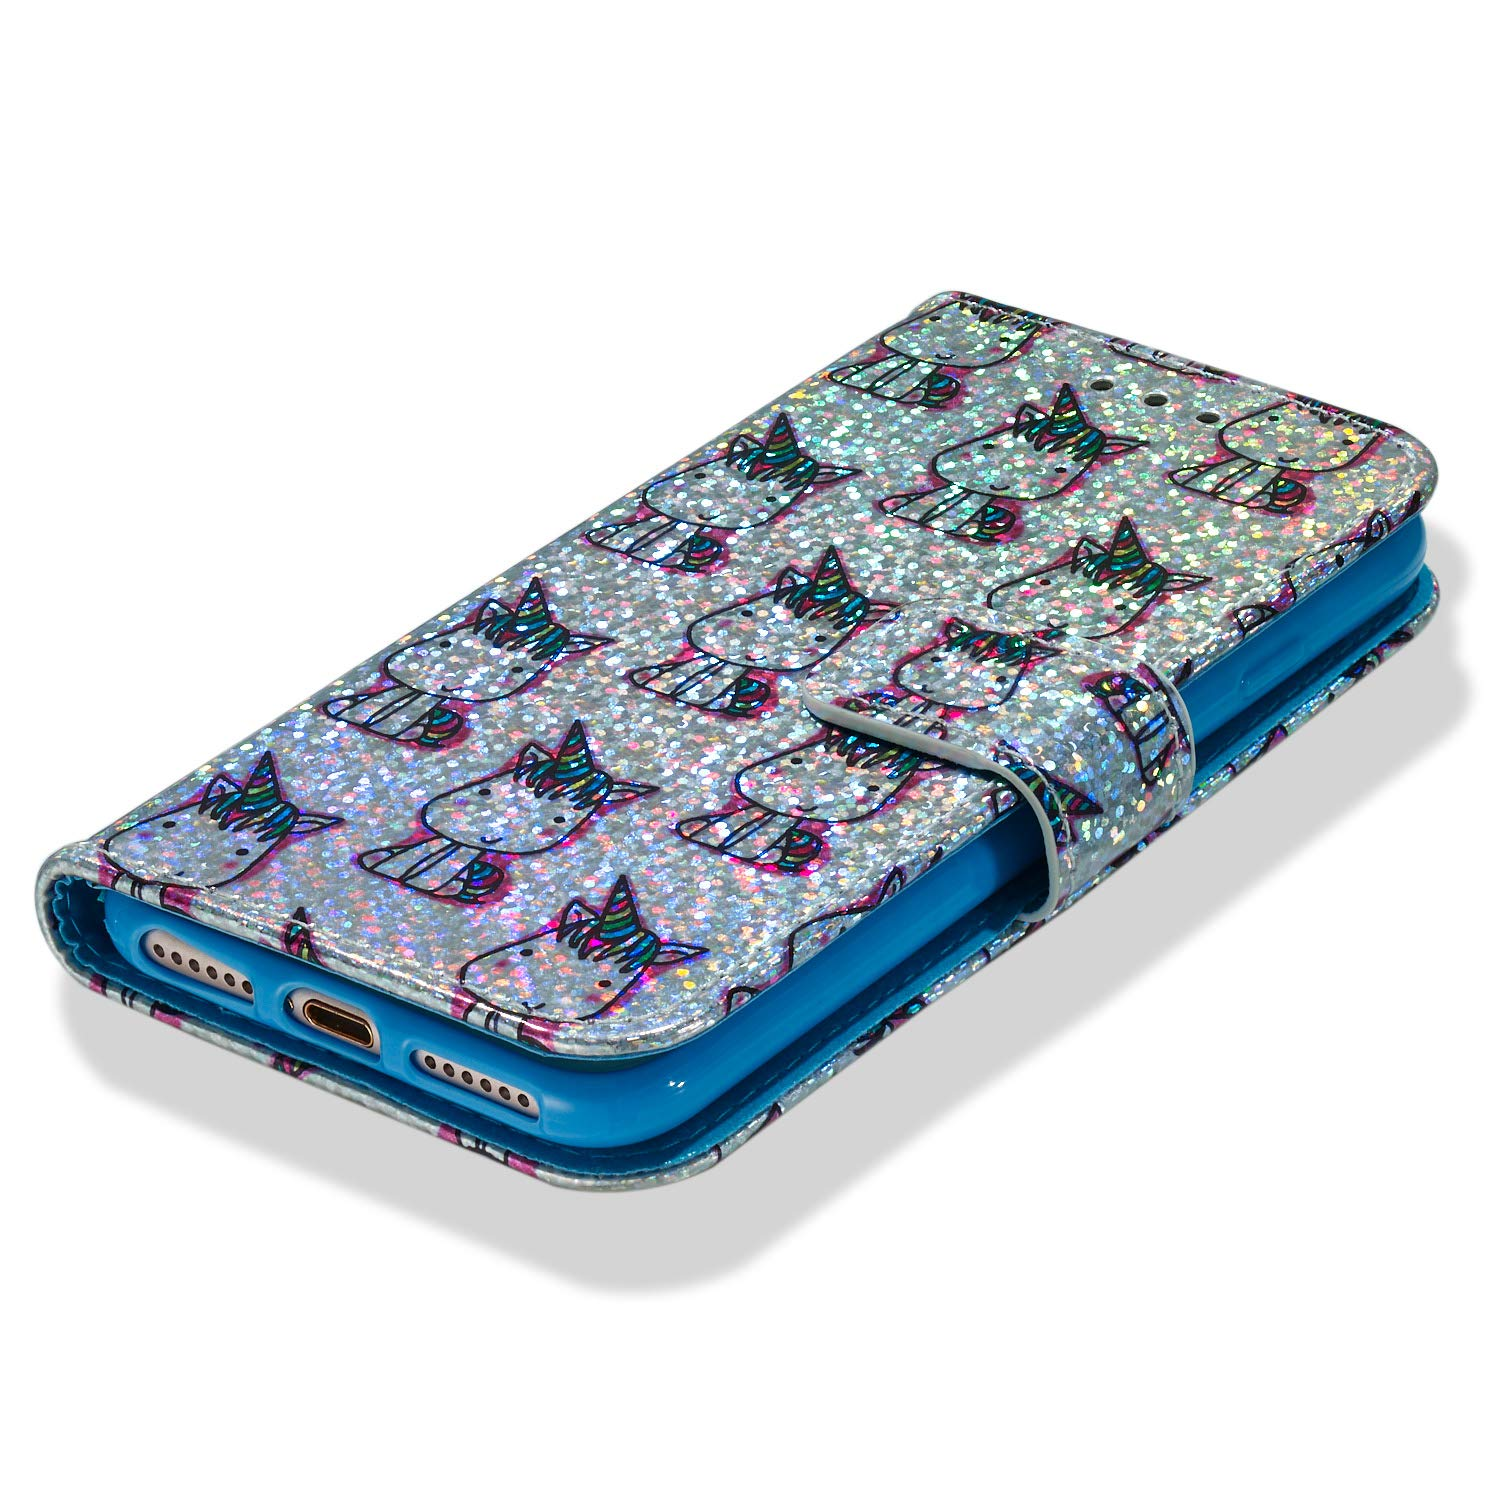 Tznzxm iPhone 7//8 Case Luxury Cartoon Design Glitter Sparkle PU Leather Card Slot Holder with Kickstand Wrist Strap Magnetic Closure Defender Protective Flip Wallet Case for iPhone 7//8 Hippocampus